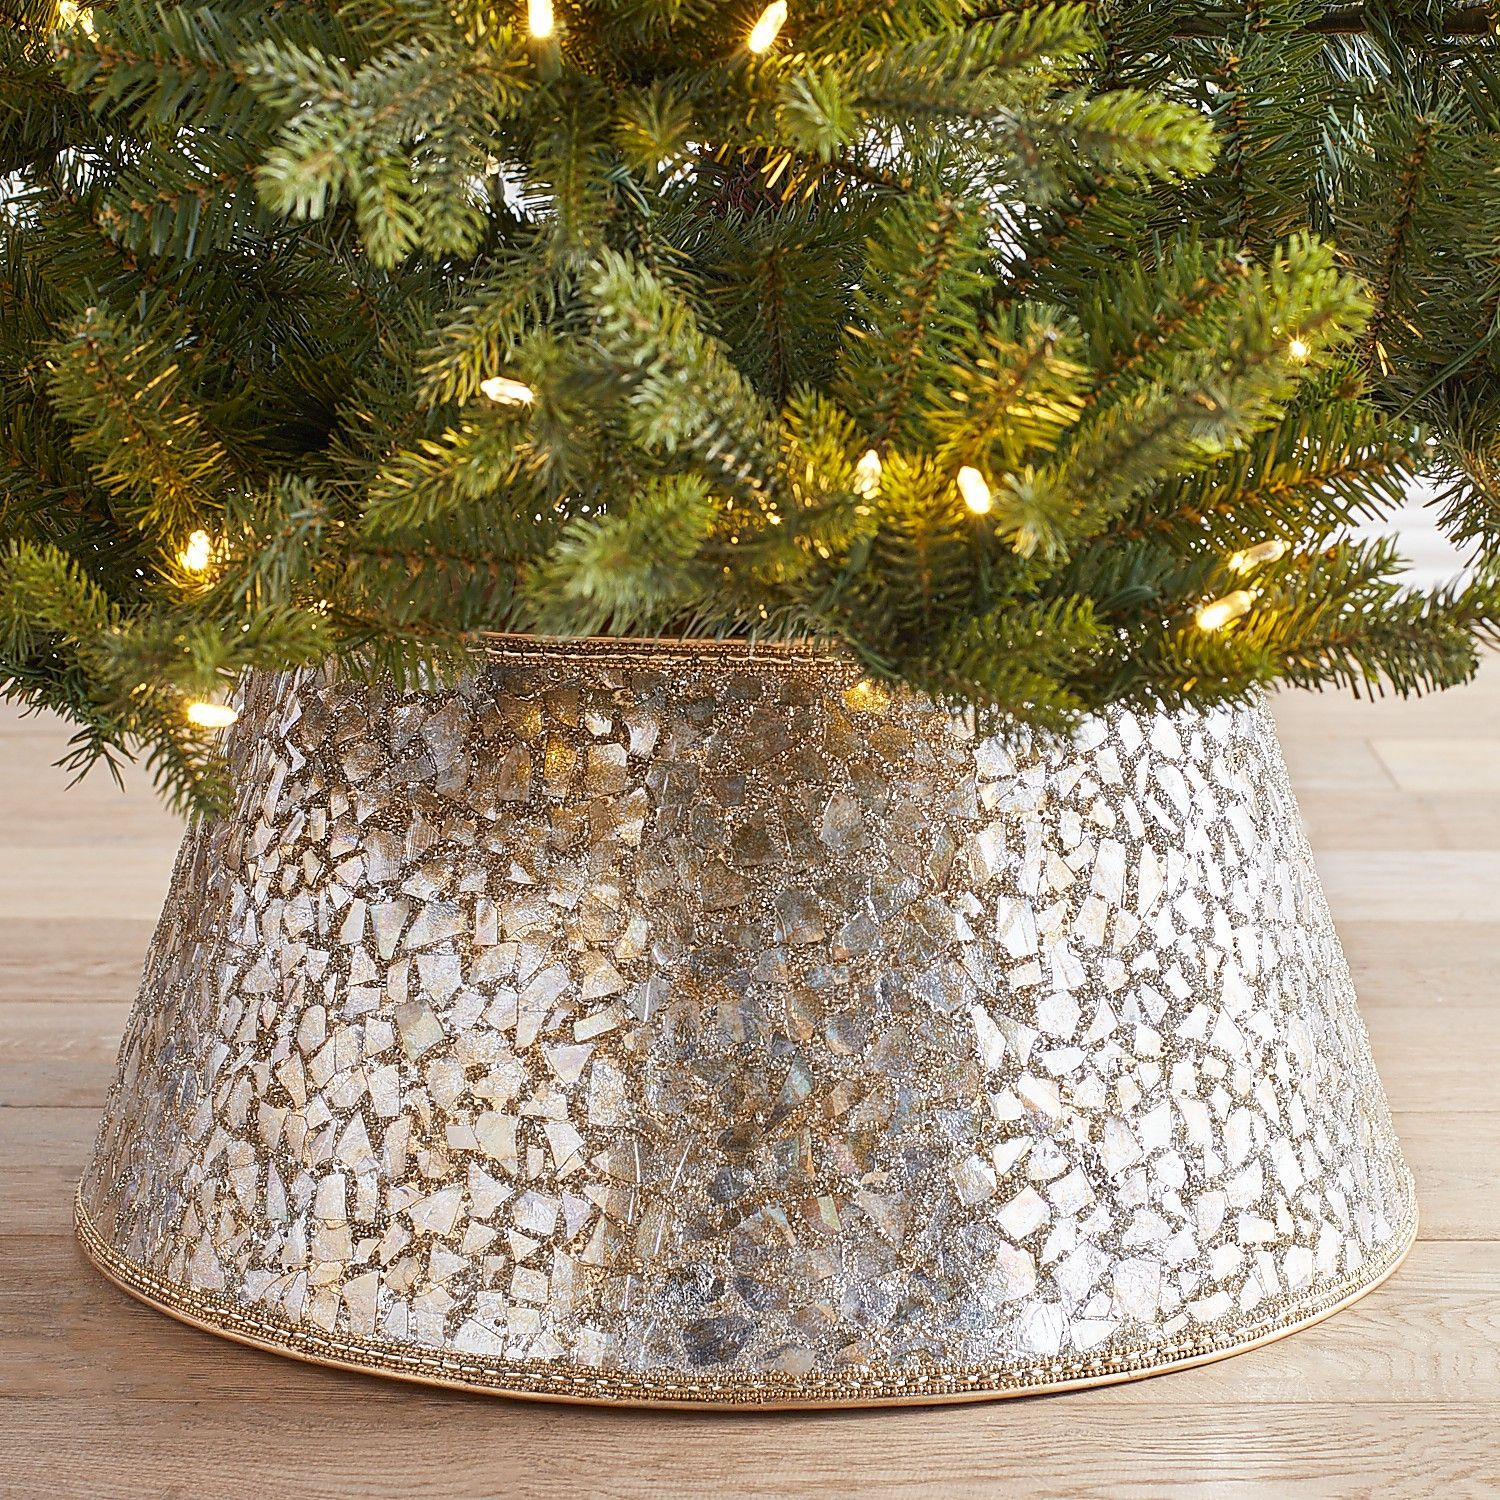 Ditch The Tree Skirt And Get A Tree Collar This Year Southern Living Rose Gold Christmas Tree Metal Christmas Tree Gold Christmas Tree